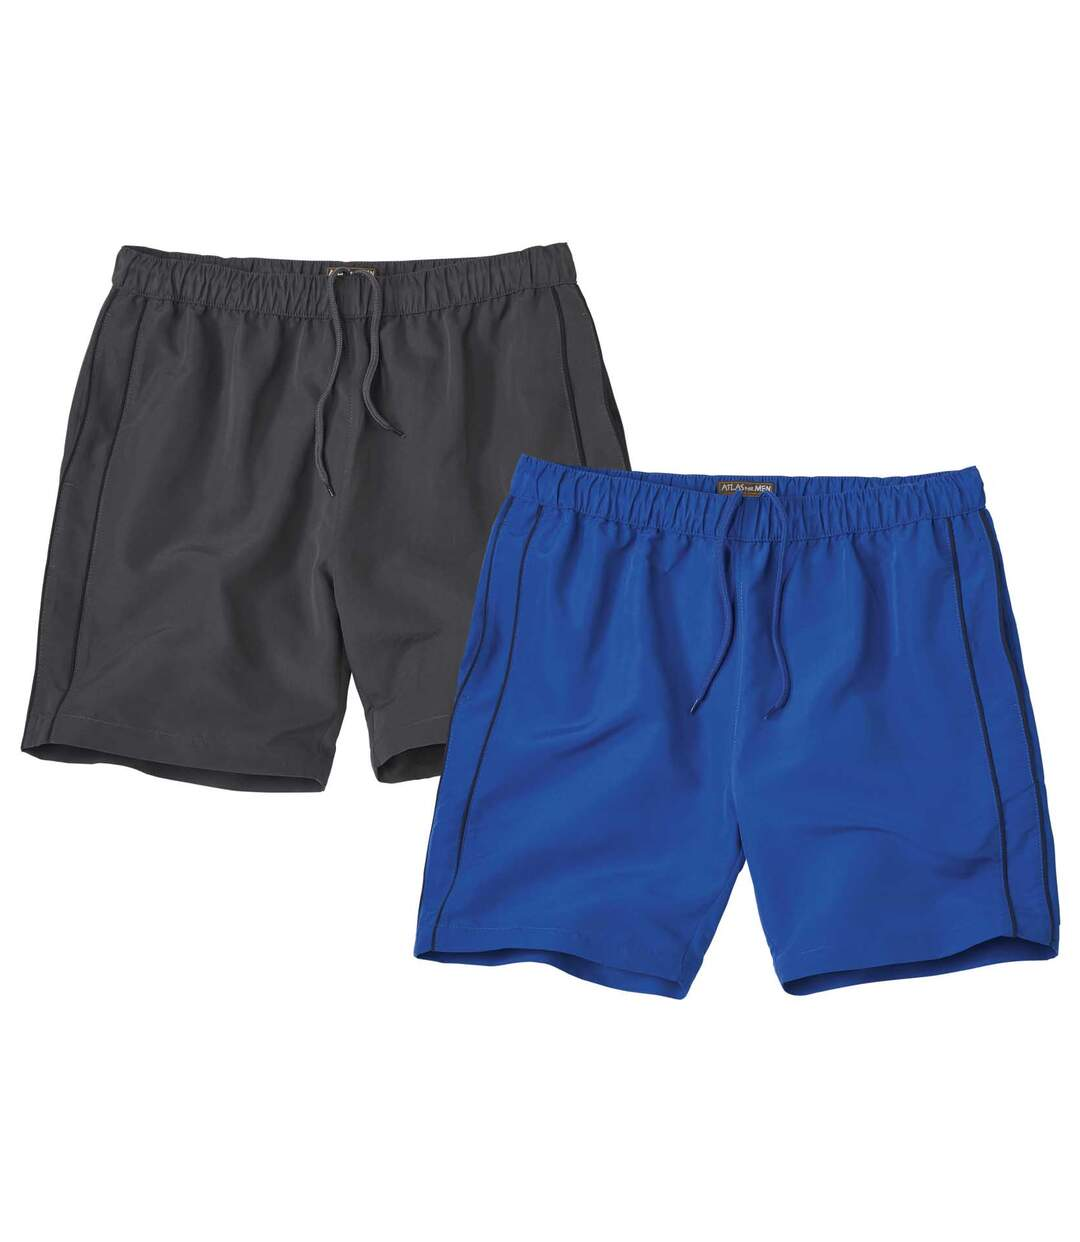 Pack of 2 Pairs of Men's Swim Shorts - Blue Grey